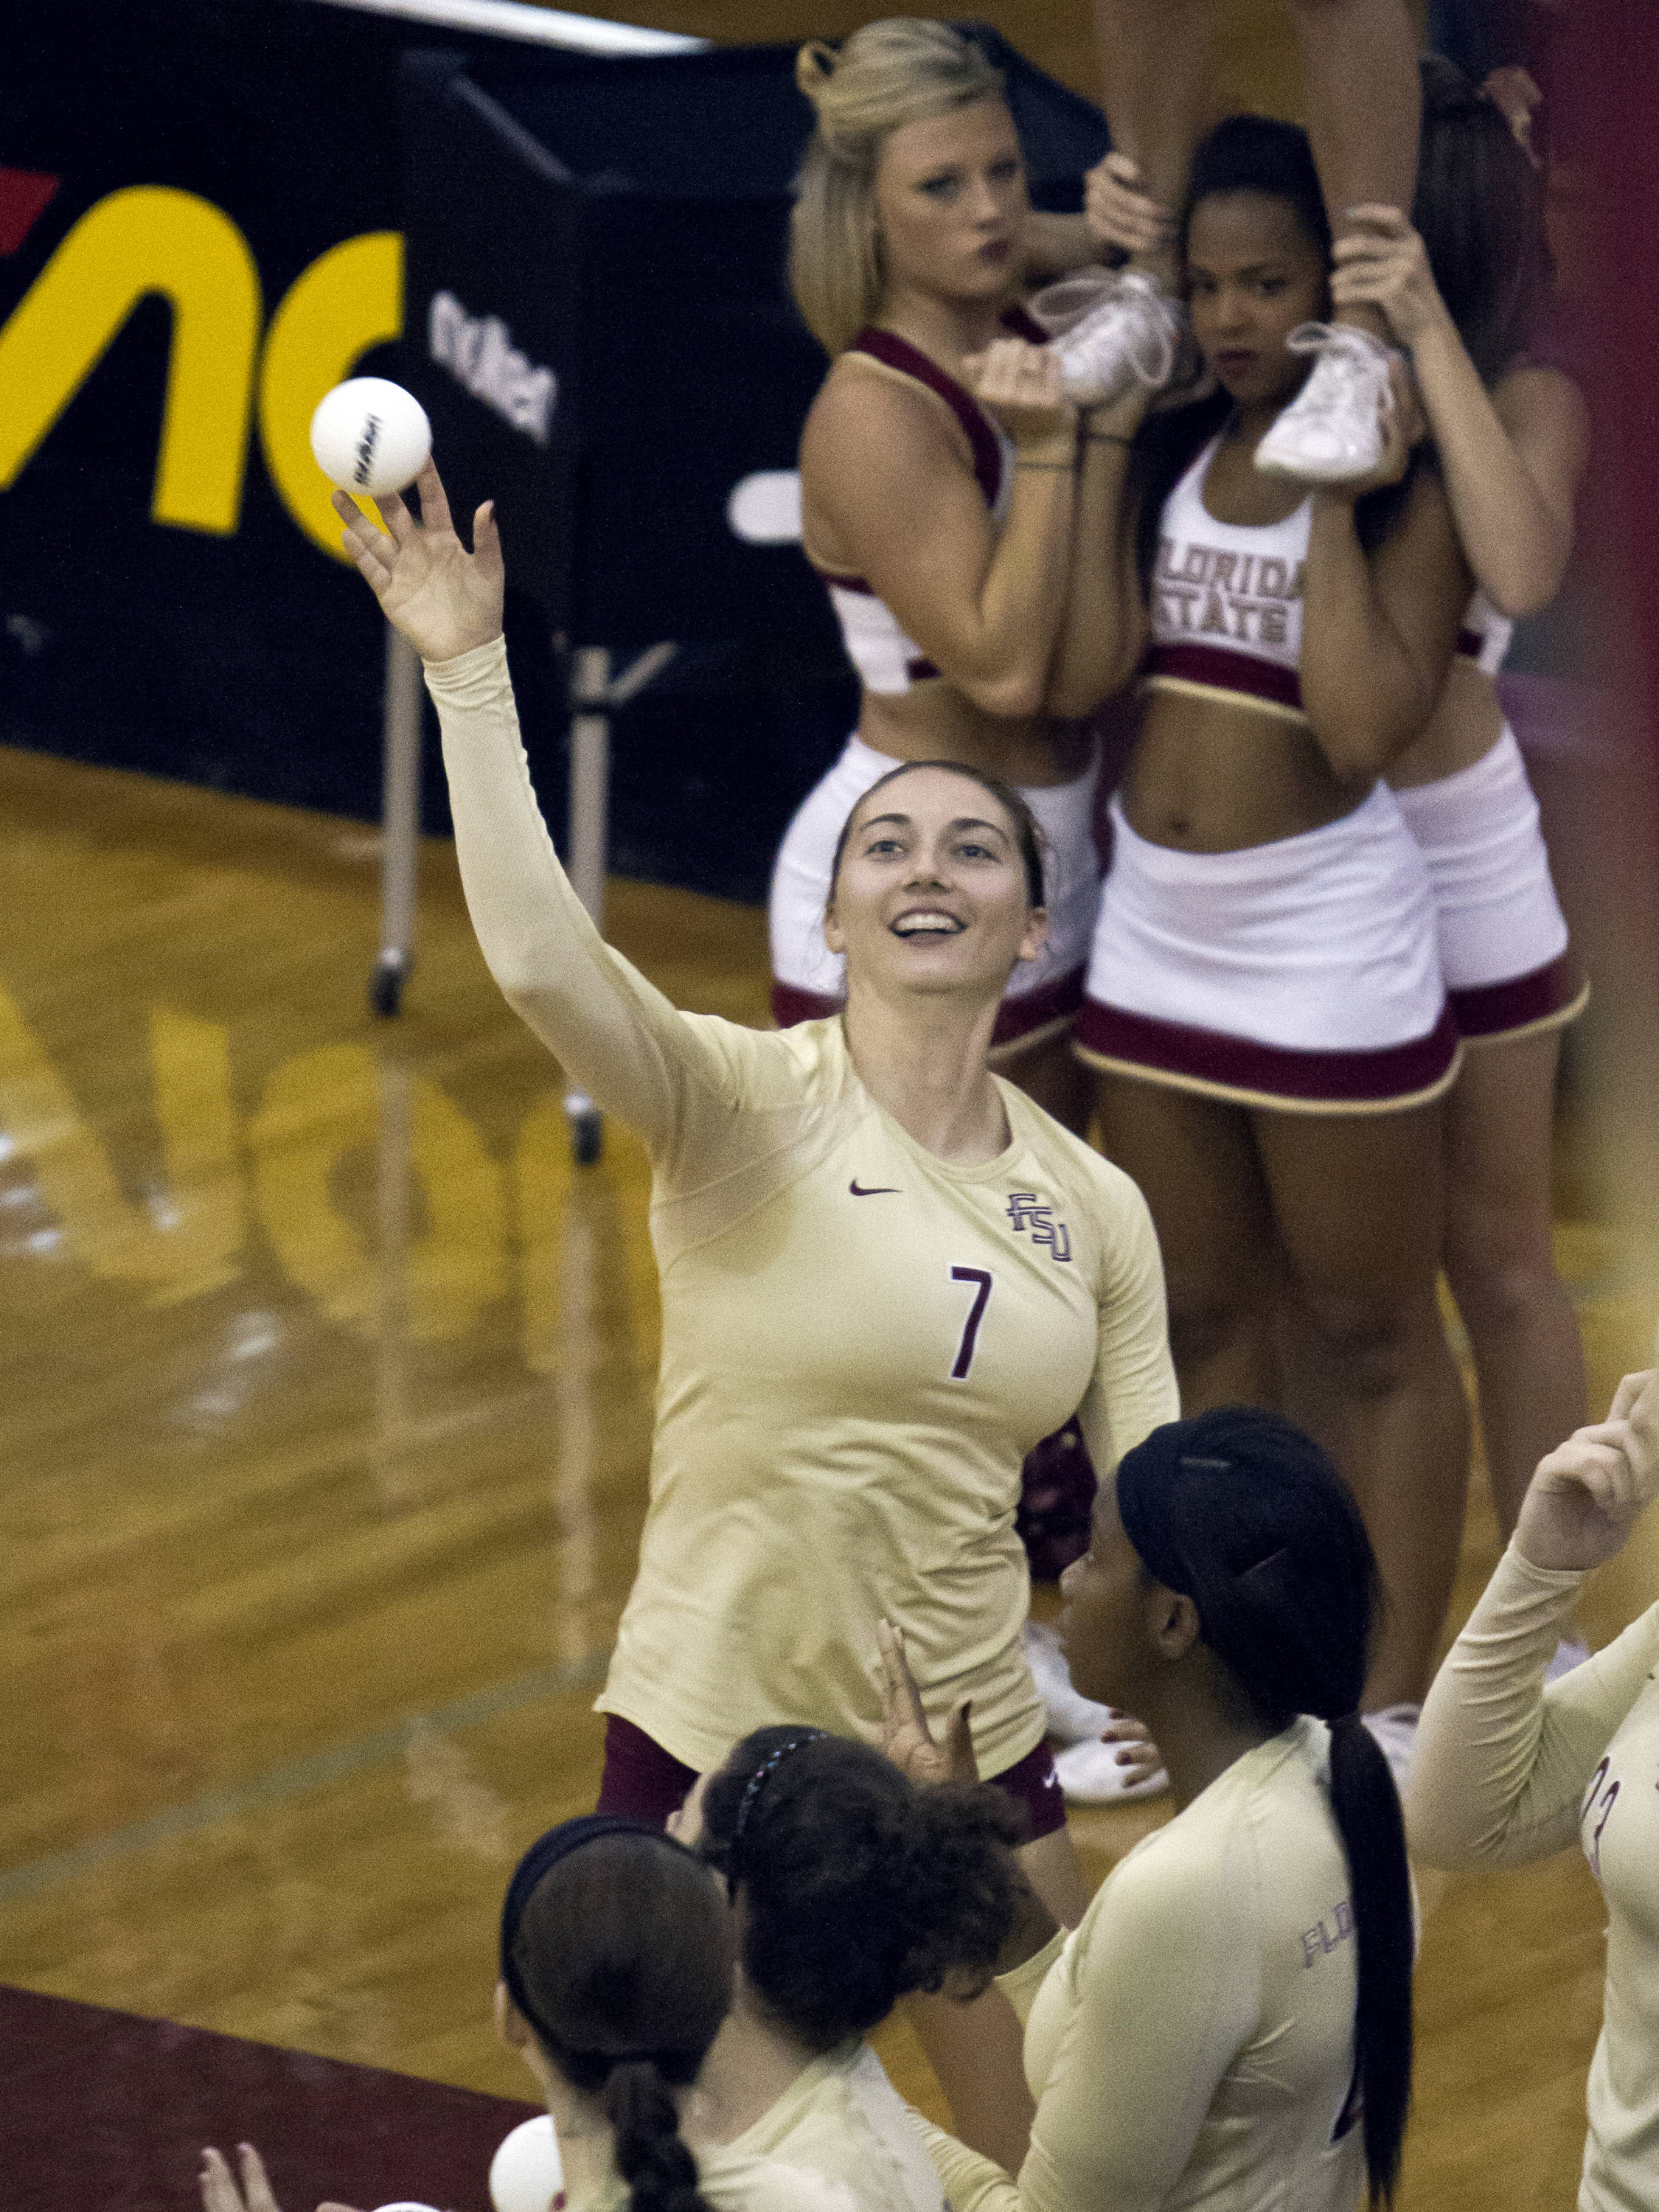 Fatma Yildirim (7) with a pre-game ball toss to the fans, FSU vs NC, 10/05/12 (Photo by Steve Musco)